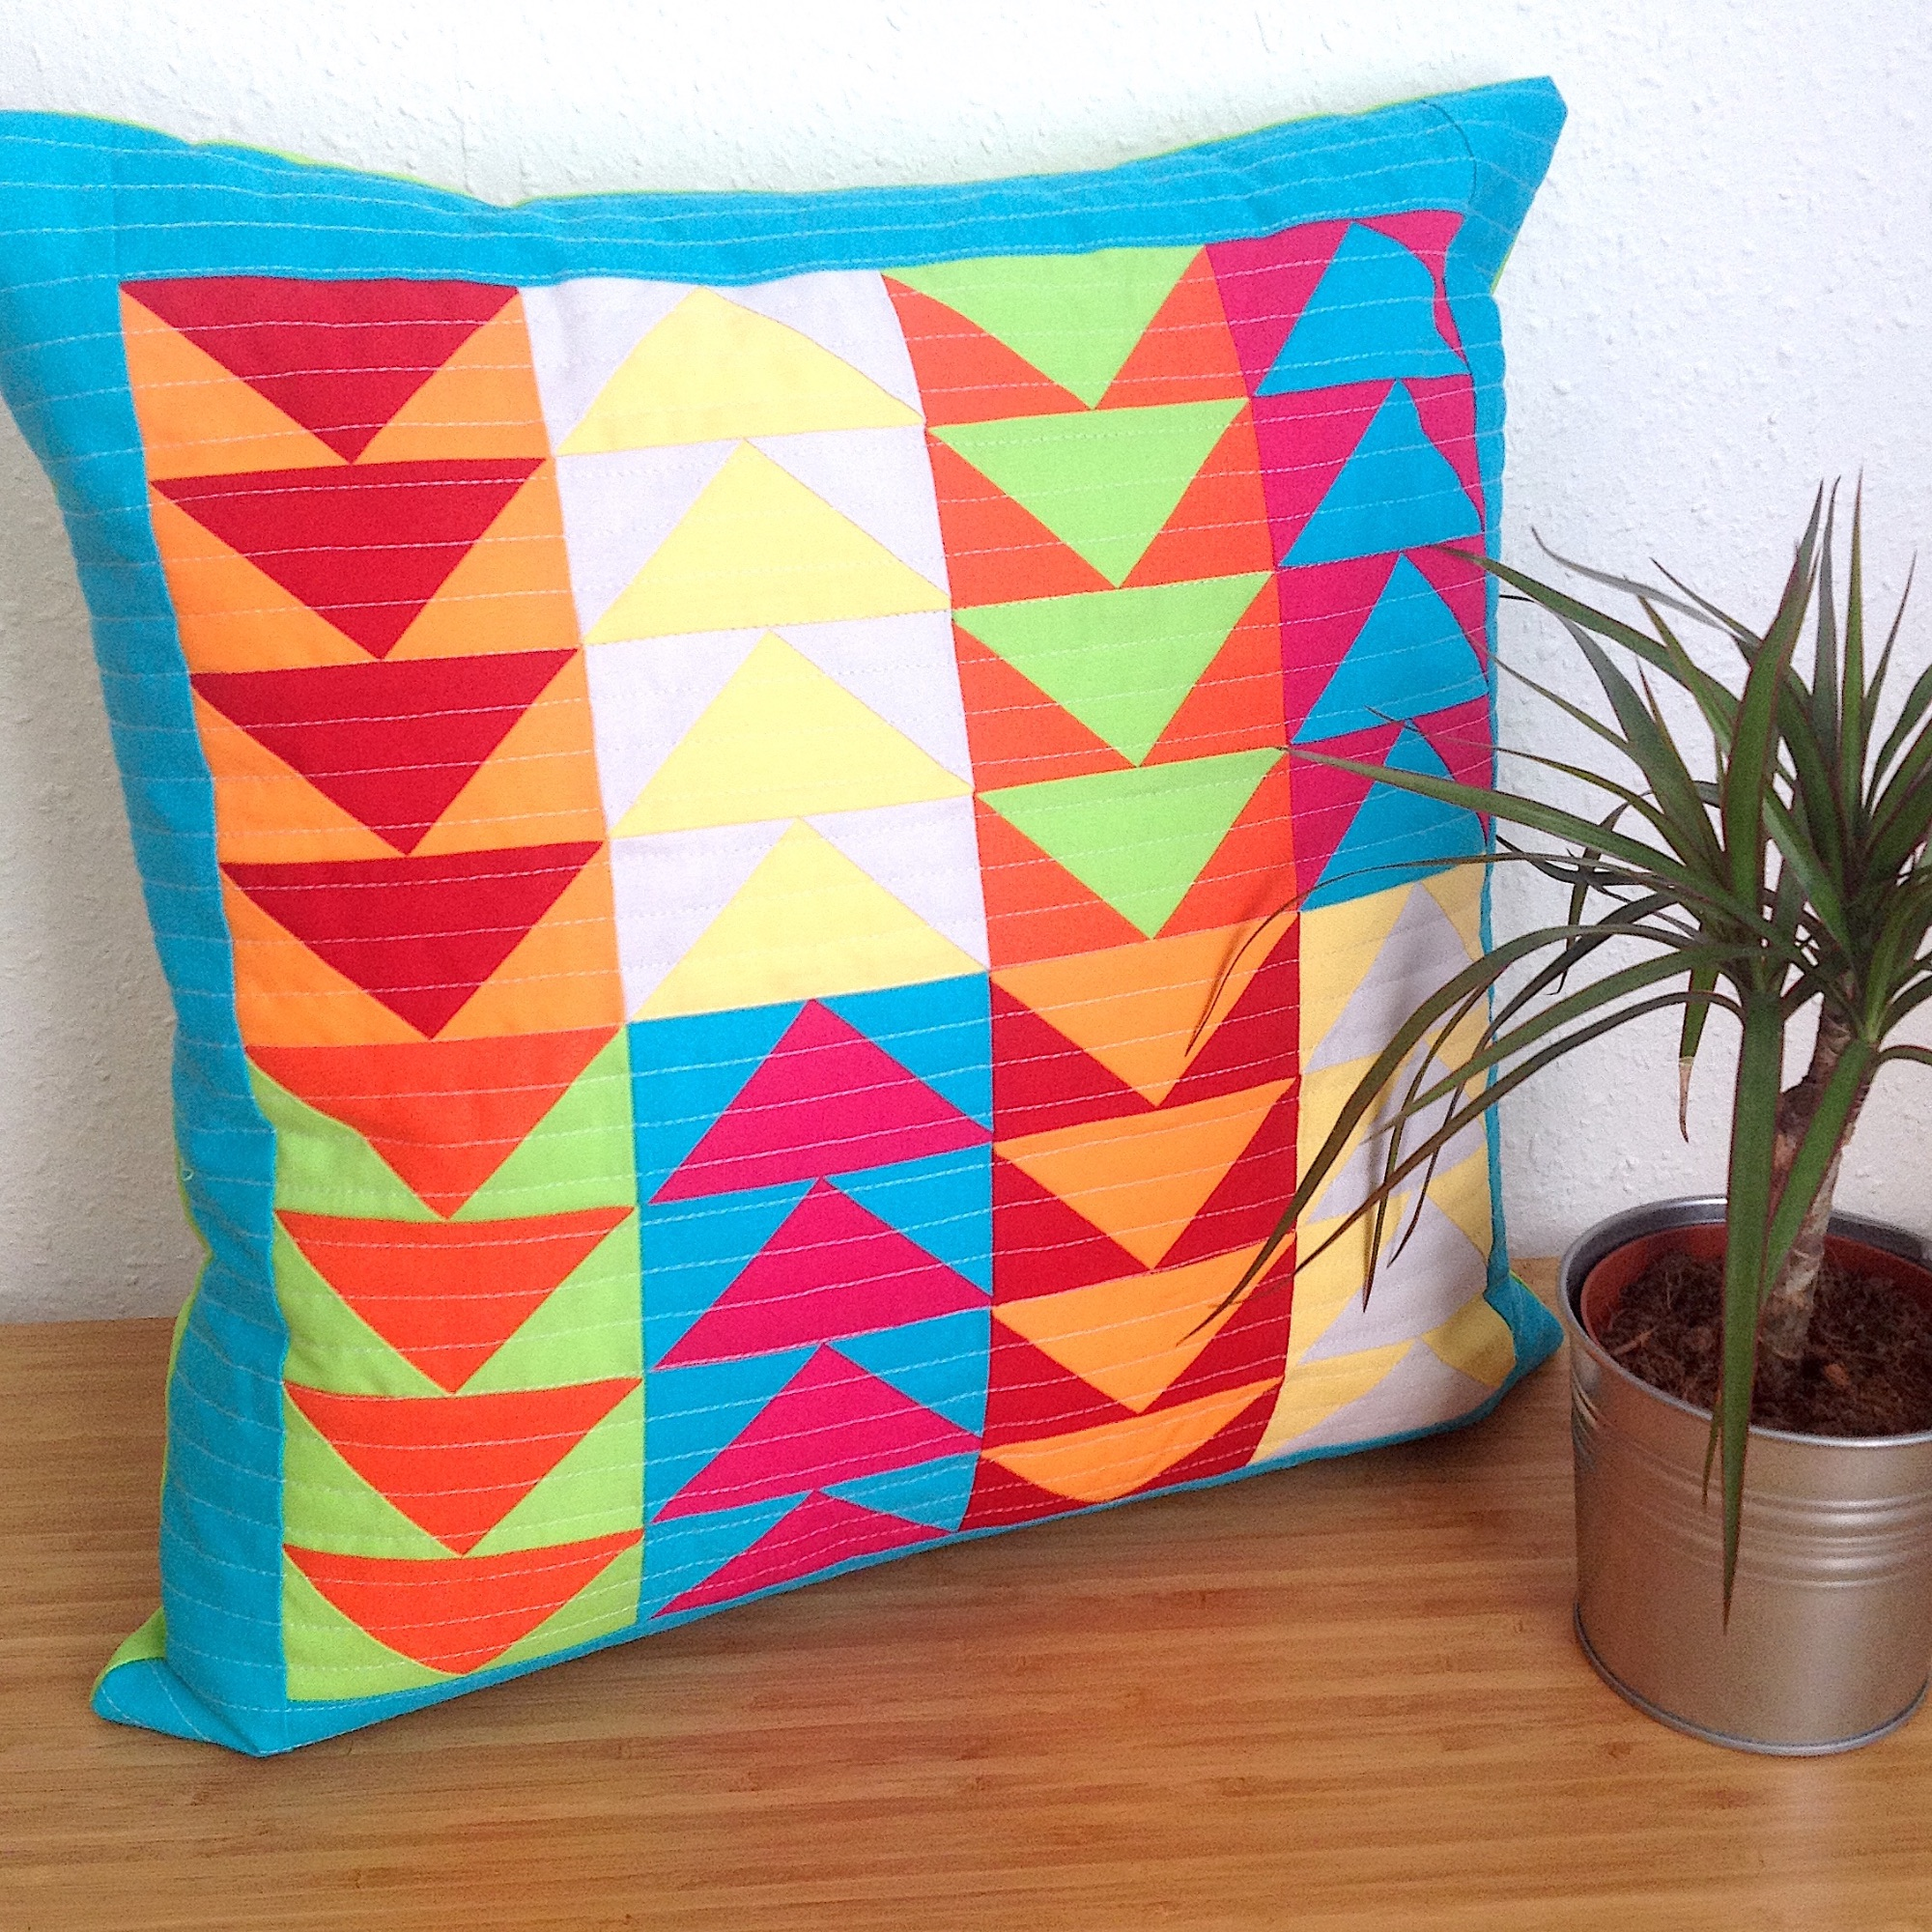 Flying Geese Cushion - free pattern